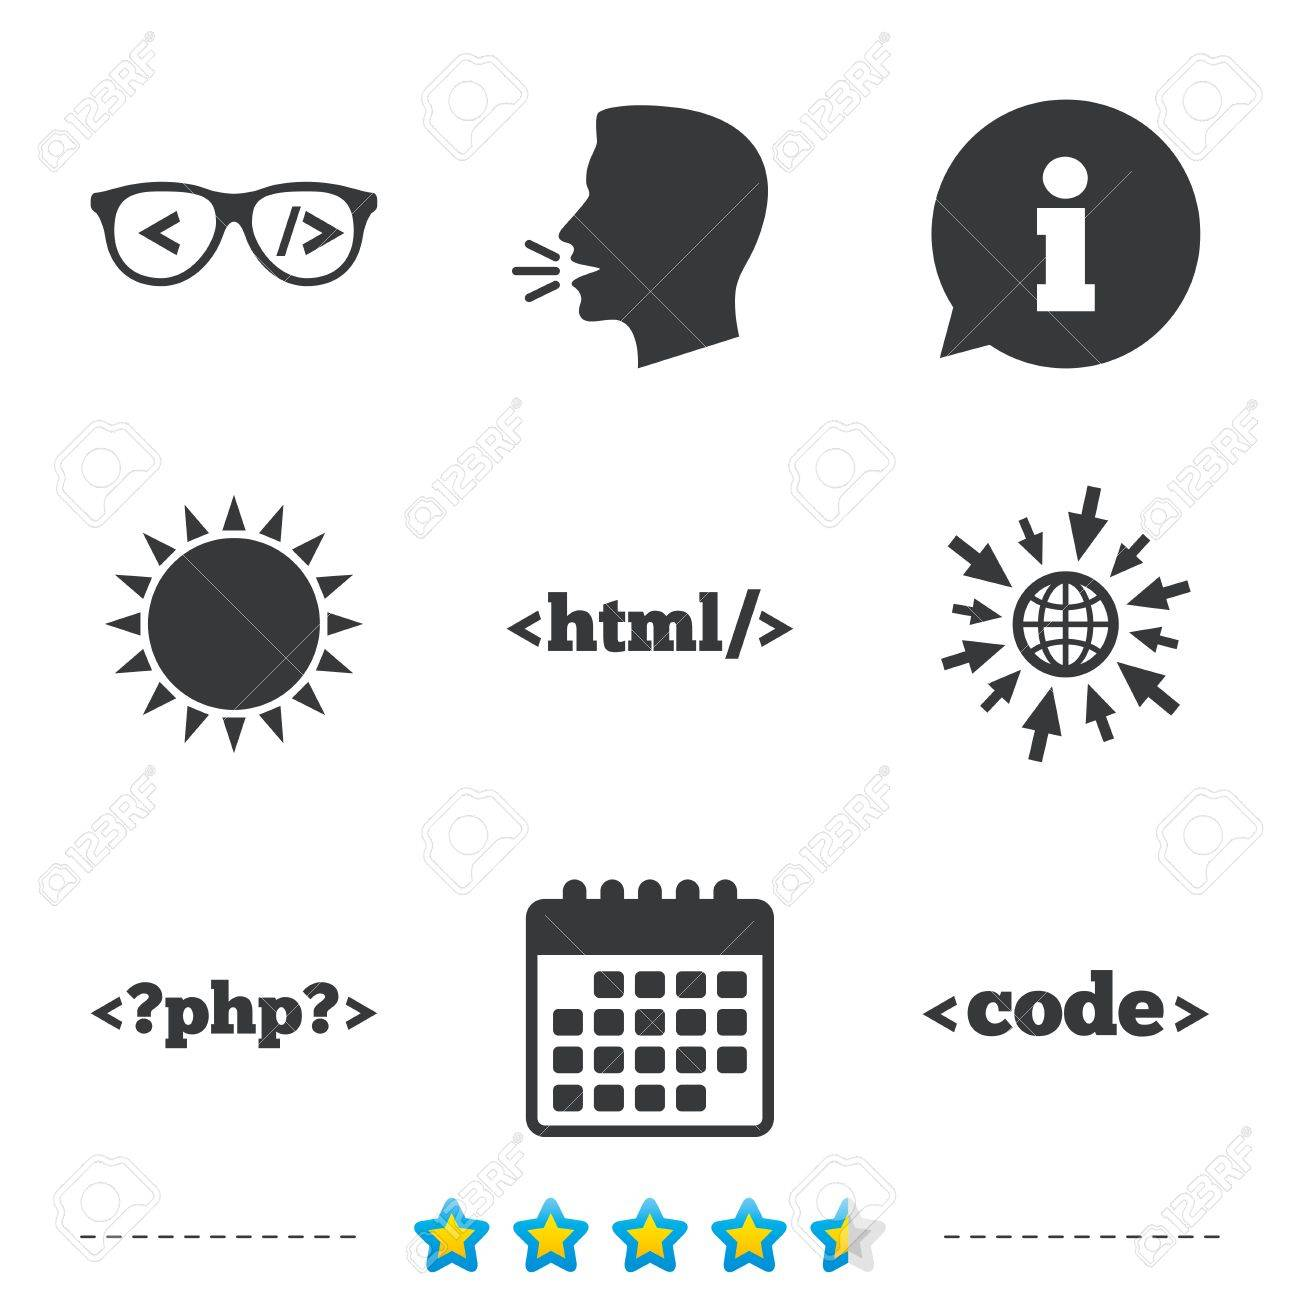 Programmer Coder Glasses Icon Html Markup Language And Php